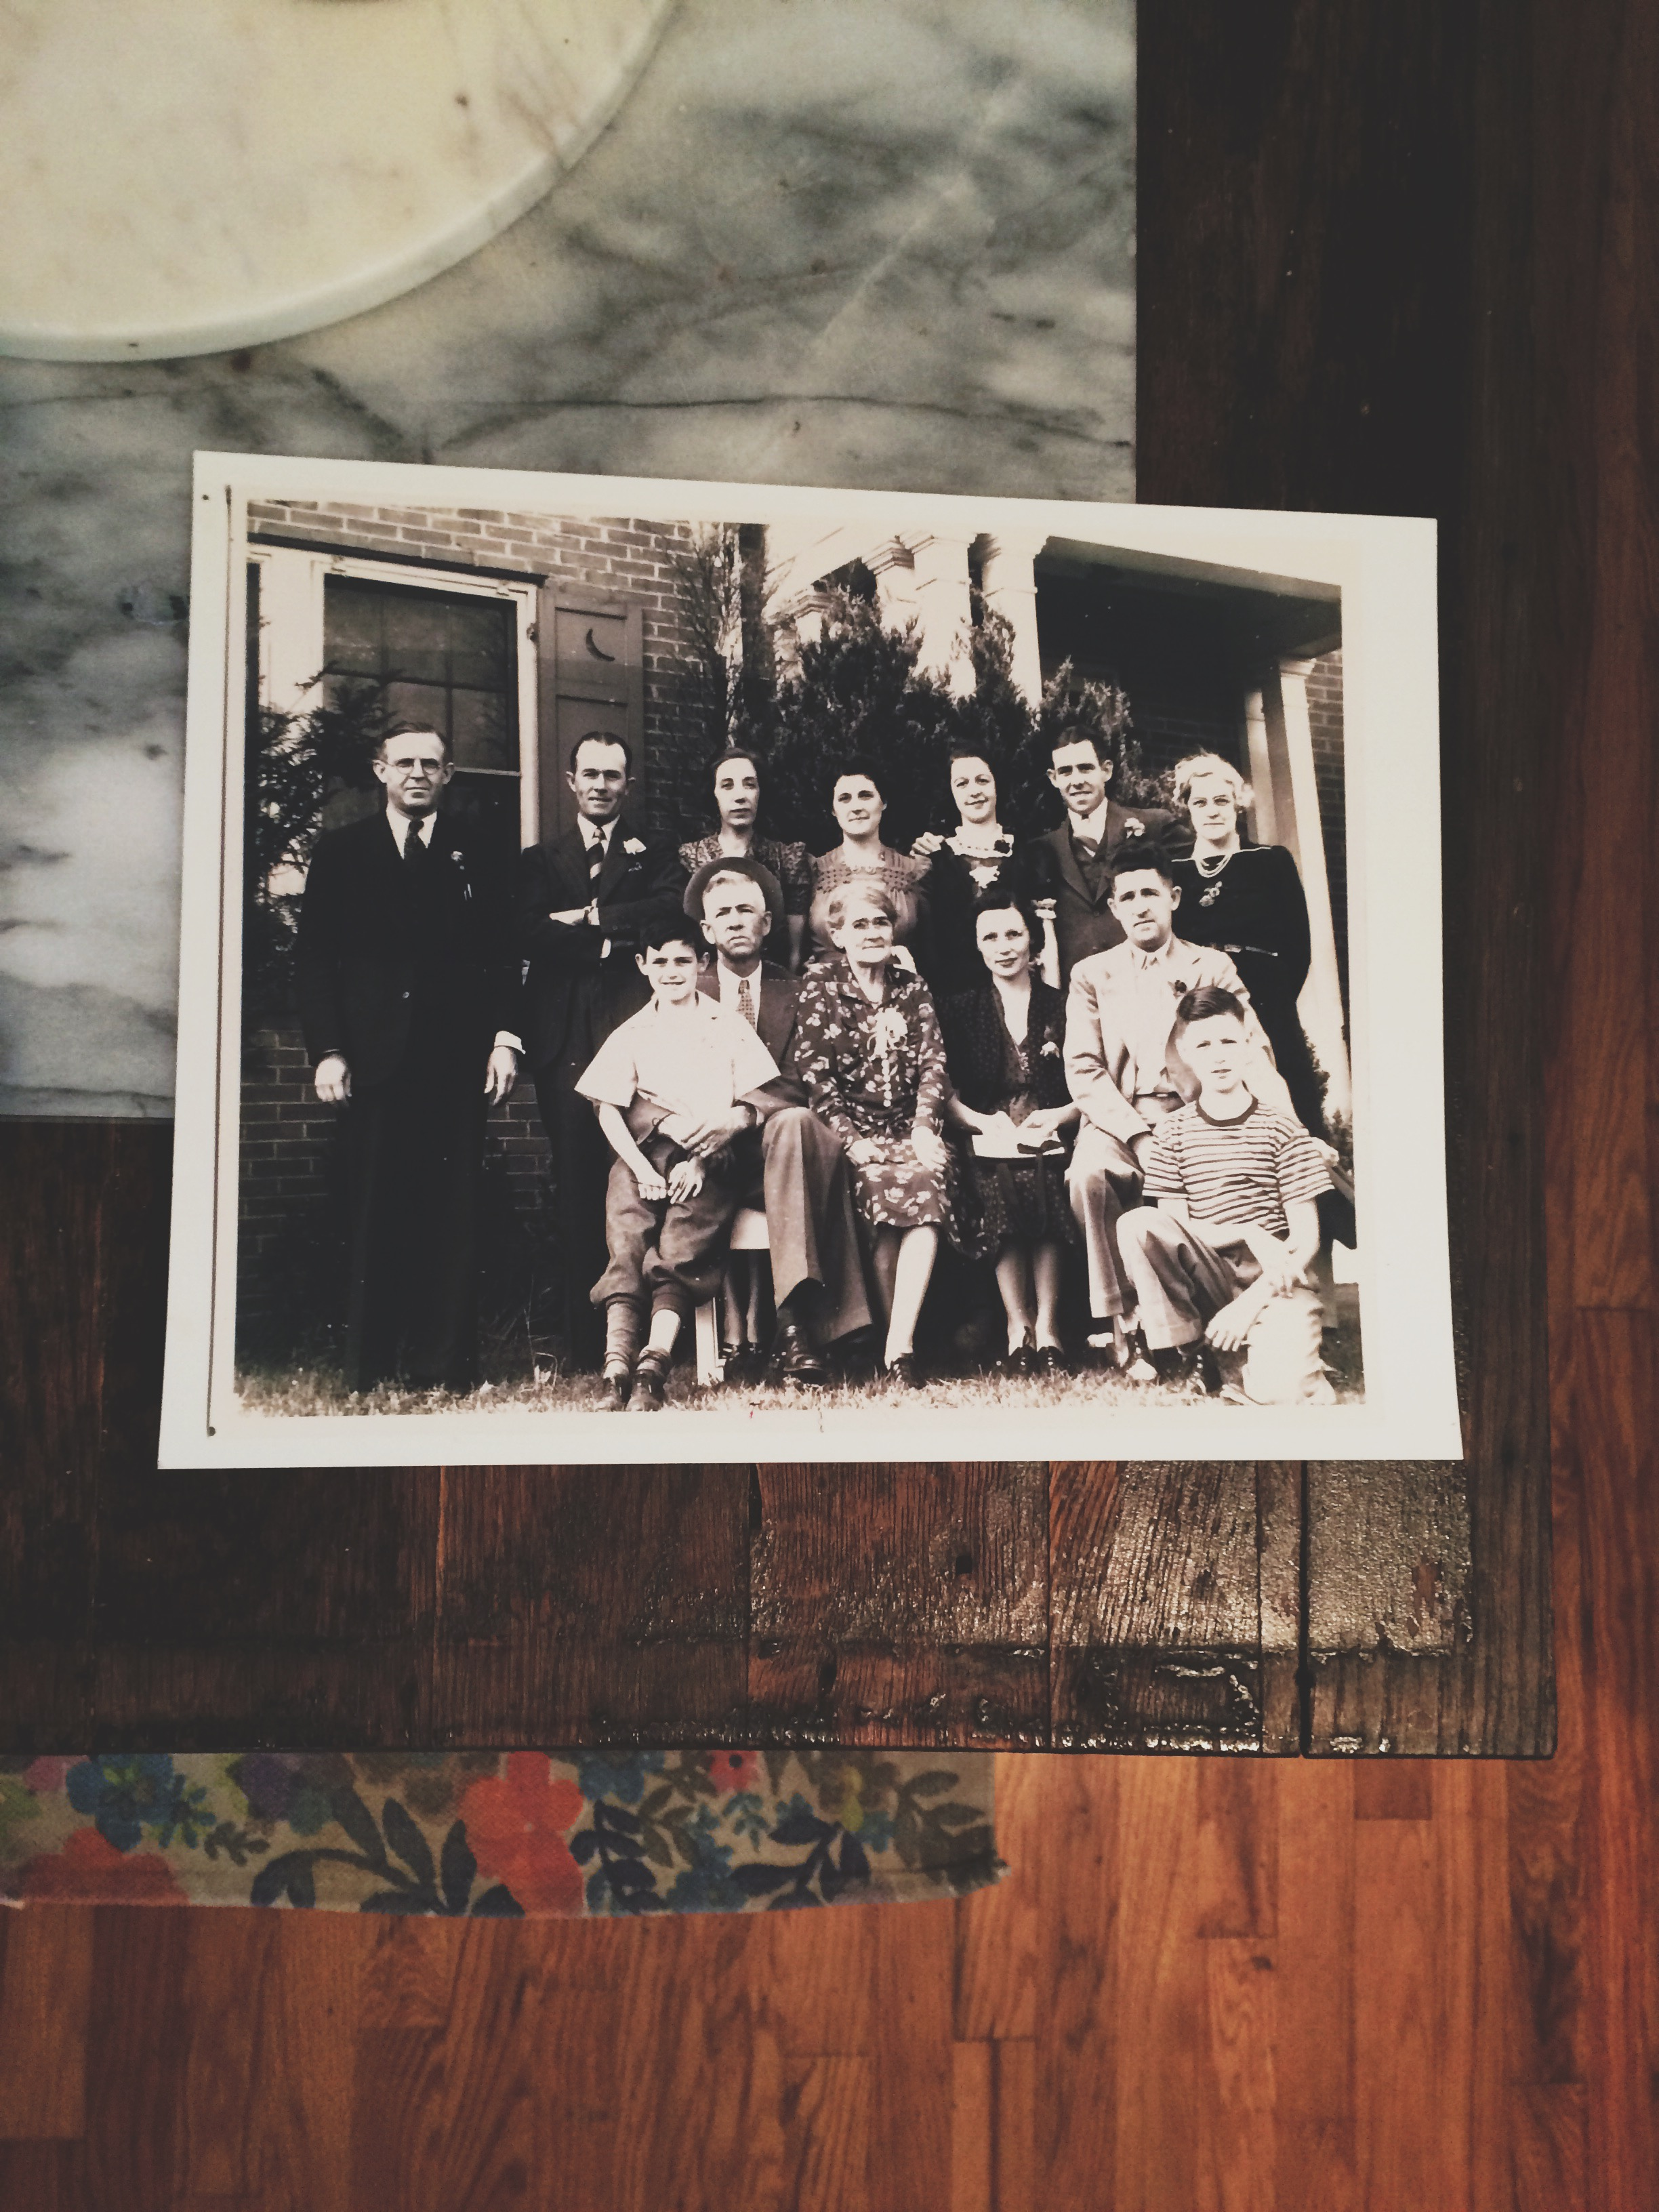 The original owners of the home: The Cunningham Family